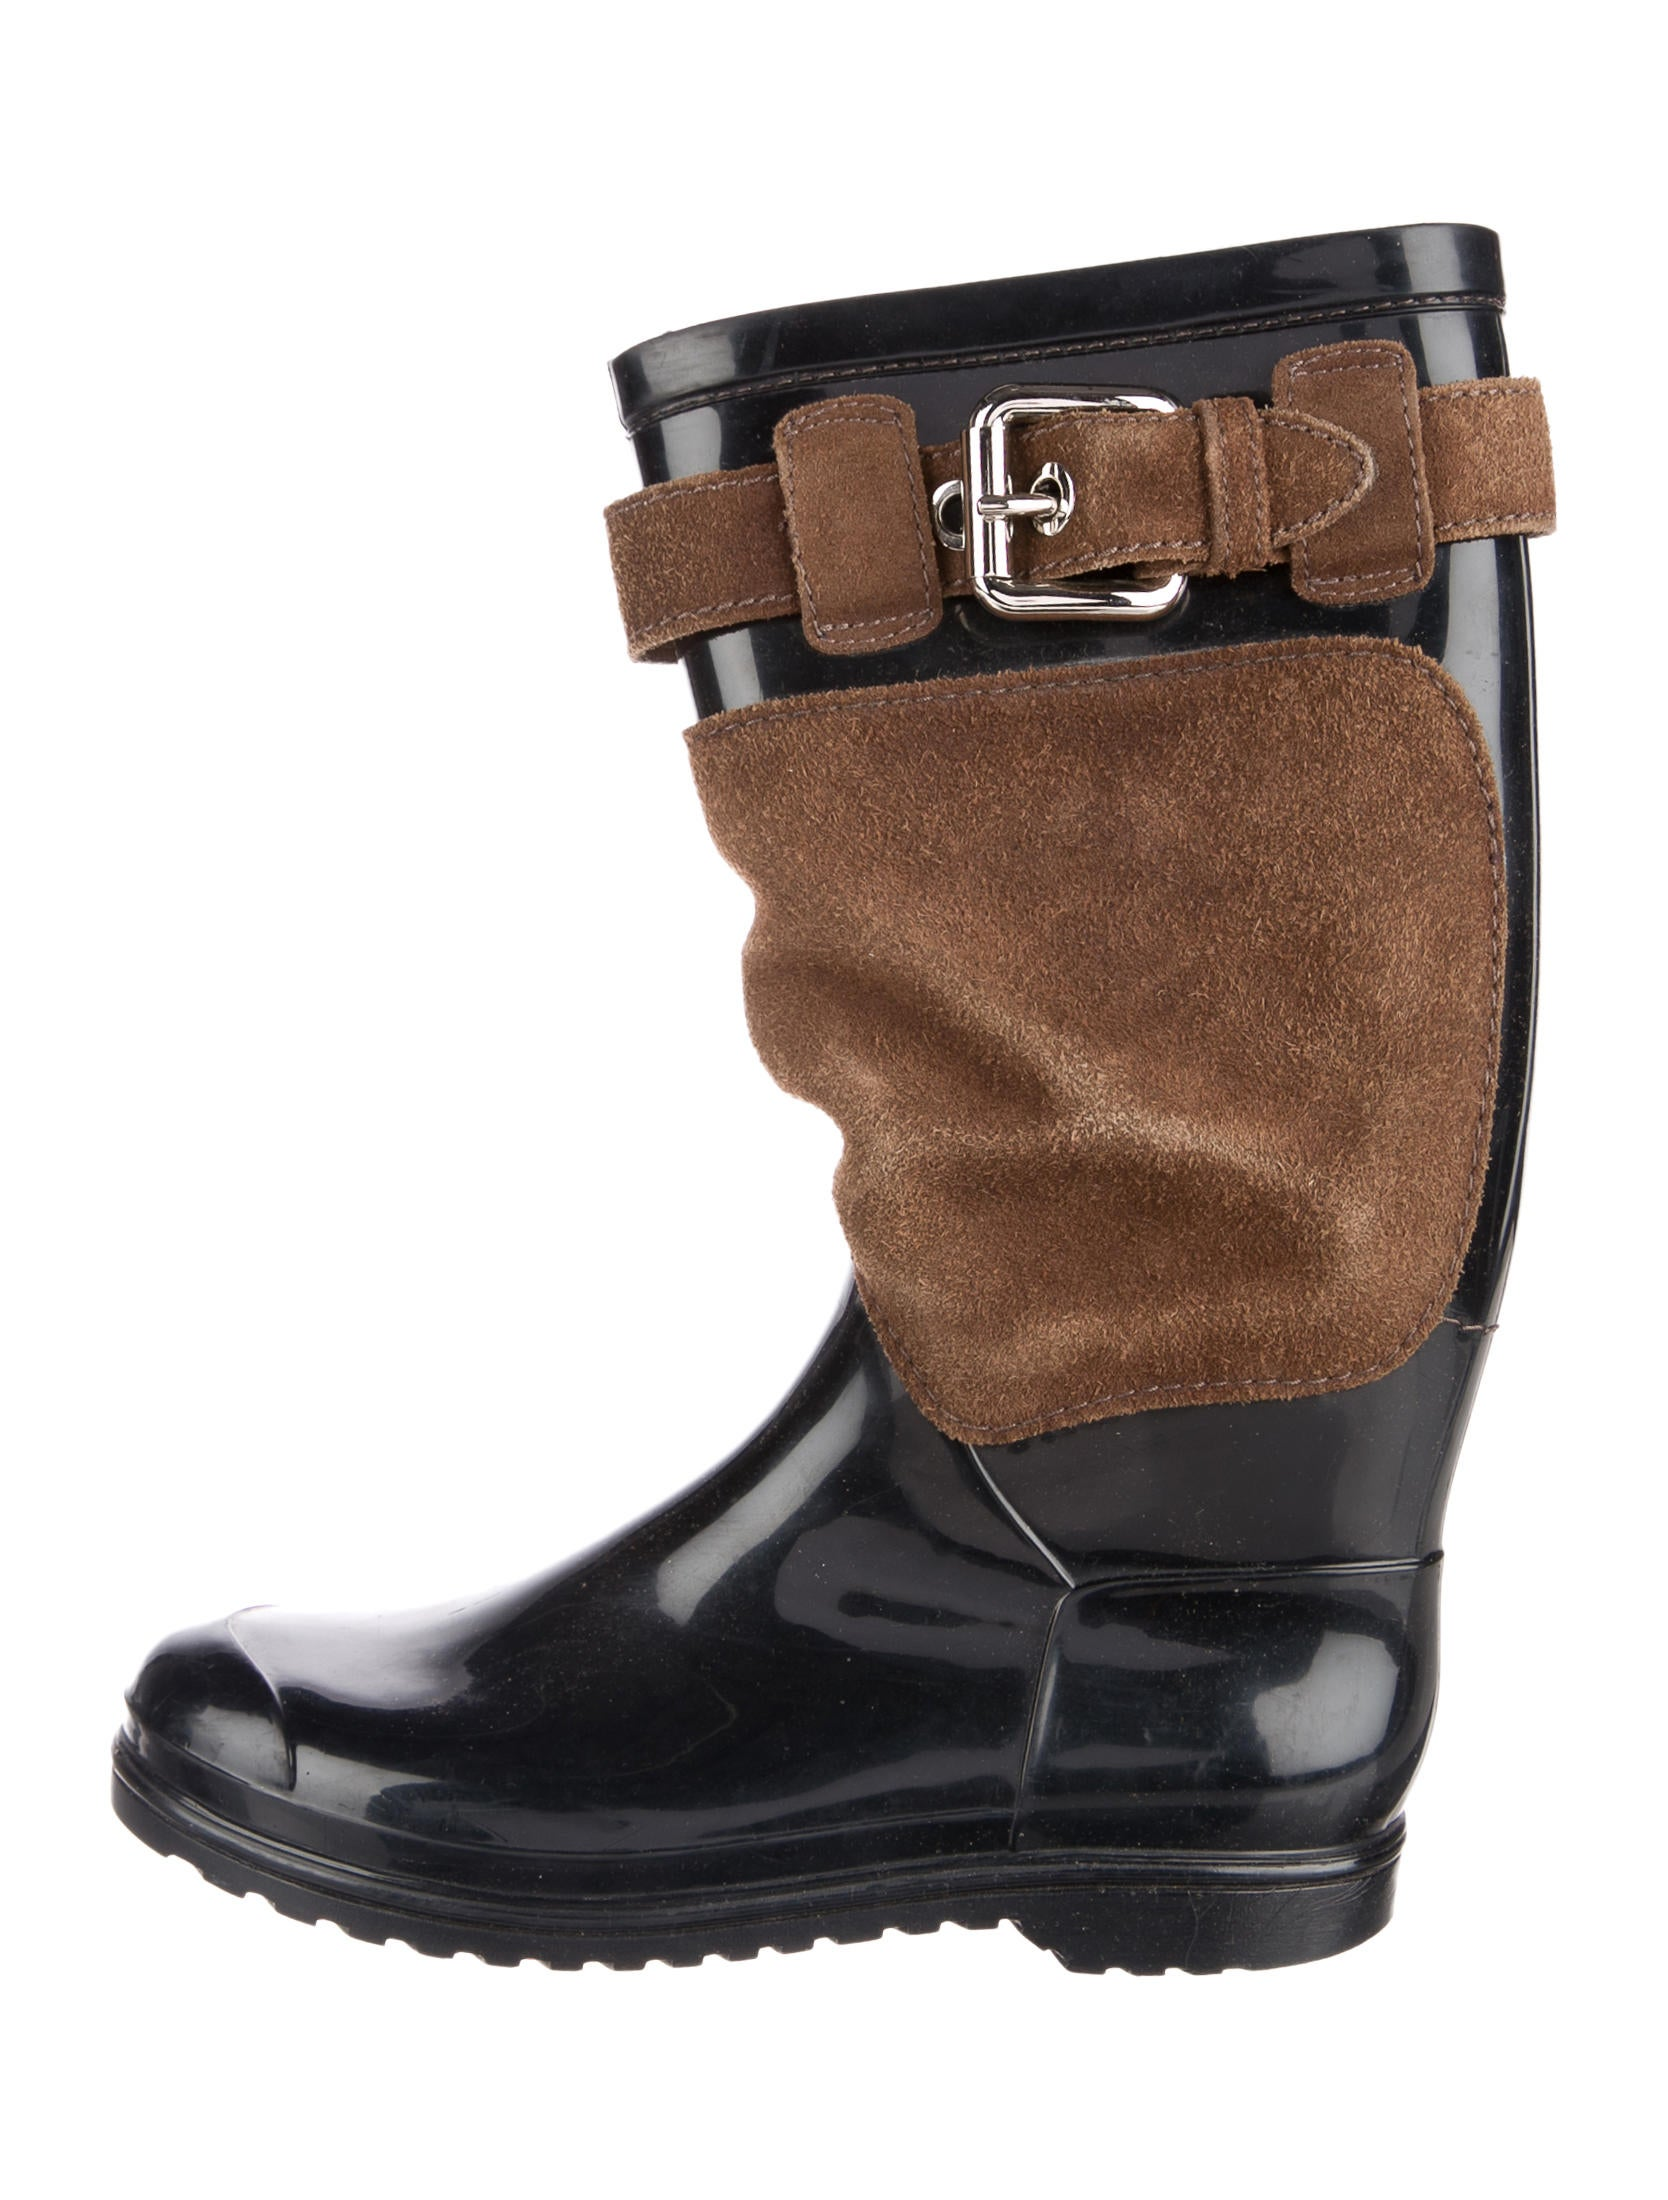 d g rubber suede boots shoes wdg37007 the realreal